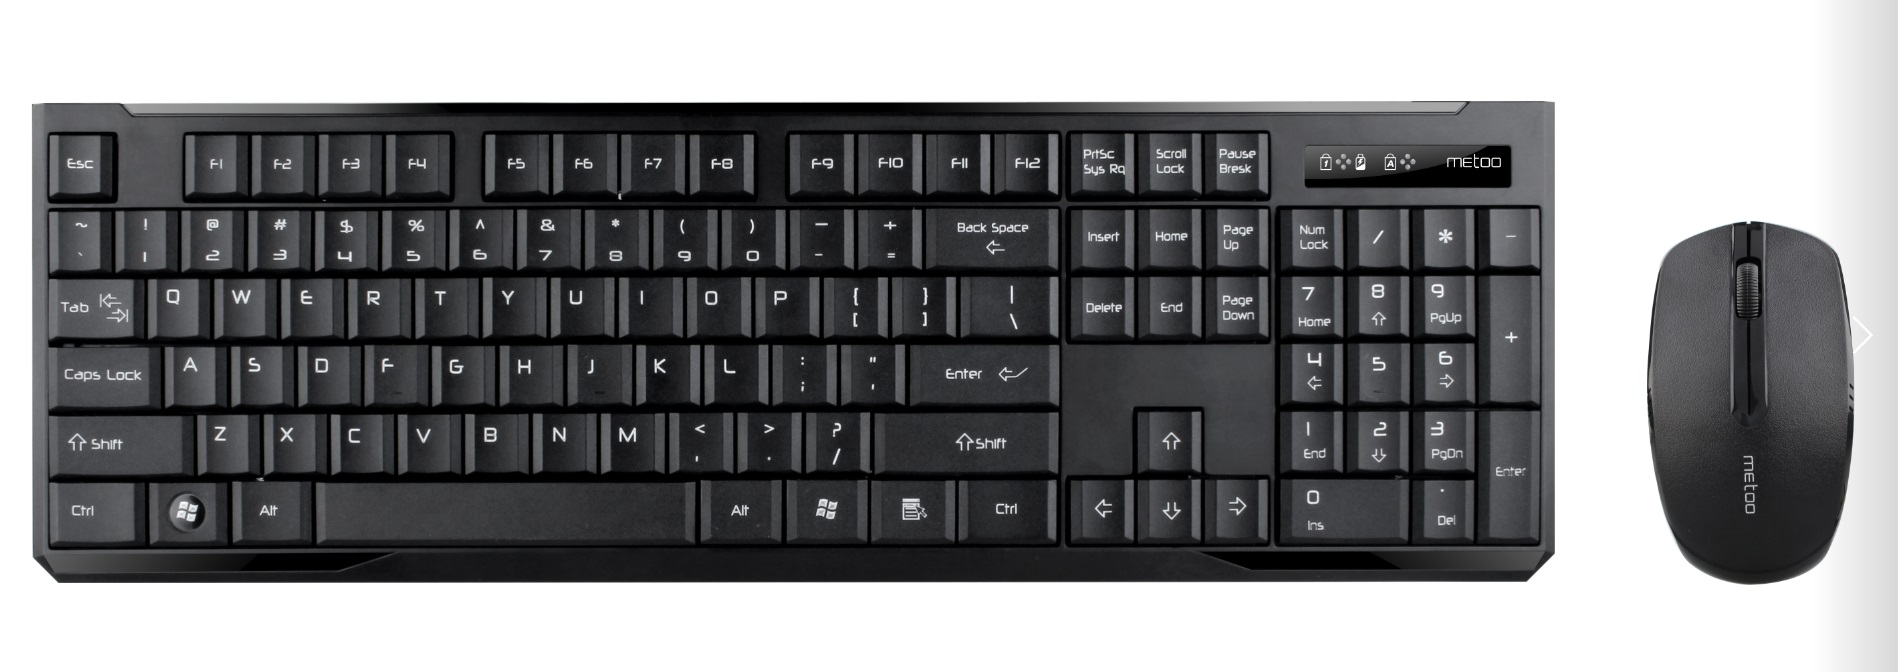 Metoo Wireless keyboard and mouse C60